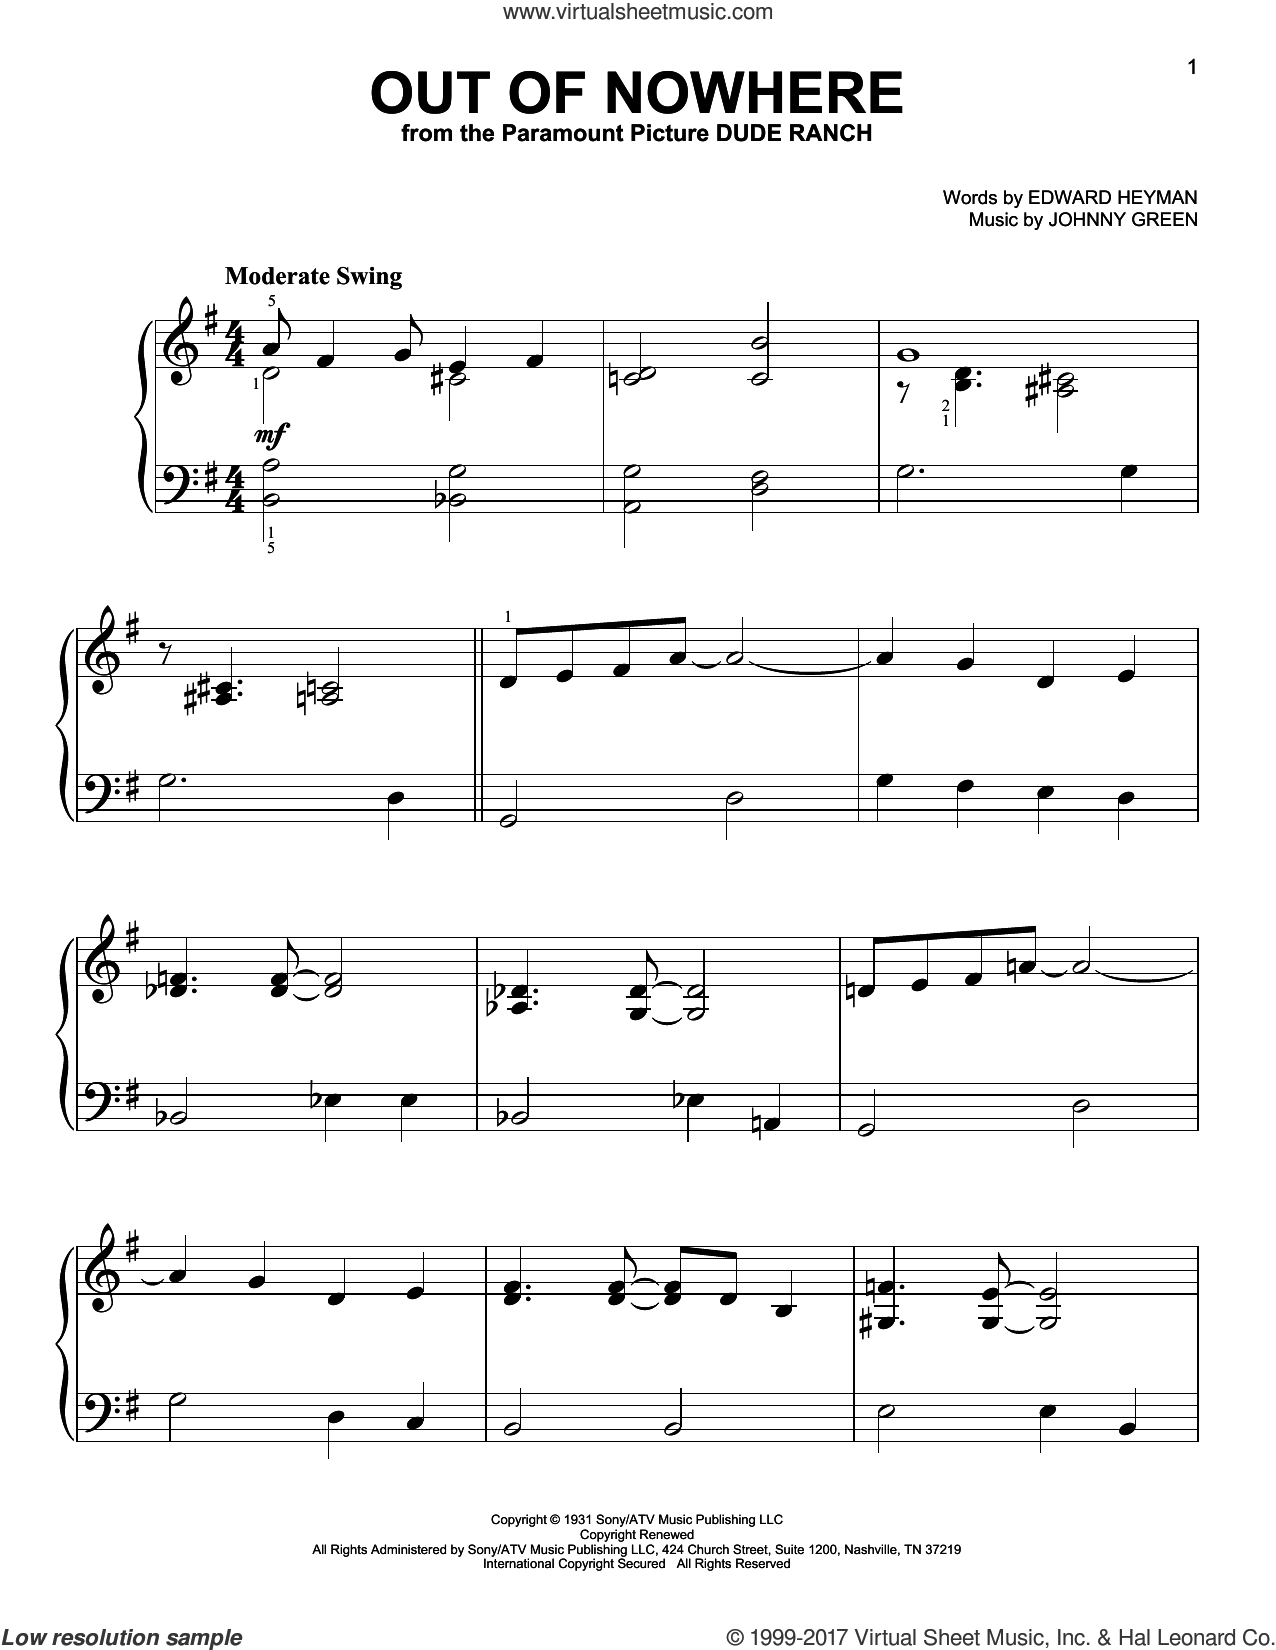 Out Of Nowhere sheet music for piano solo by Edward Heyman, Buddy DeFranco and Johnny Green, easy skill level